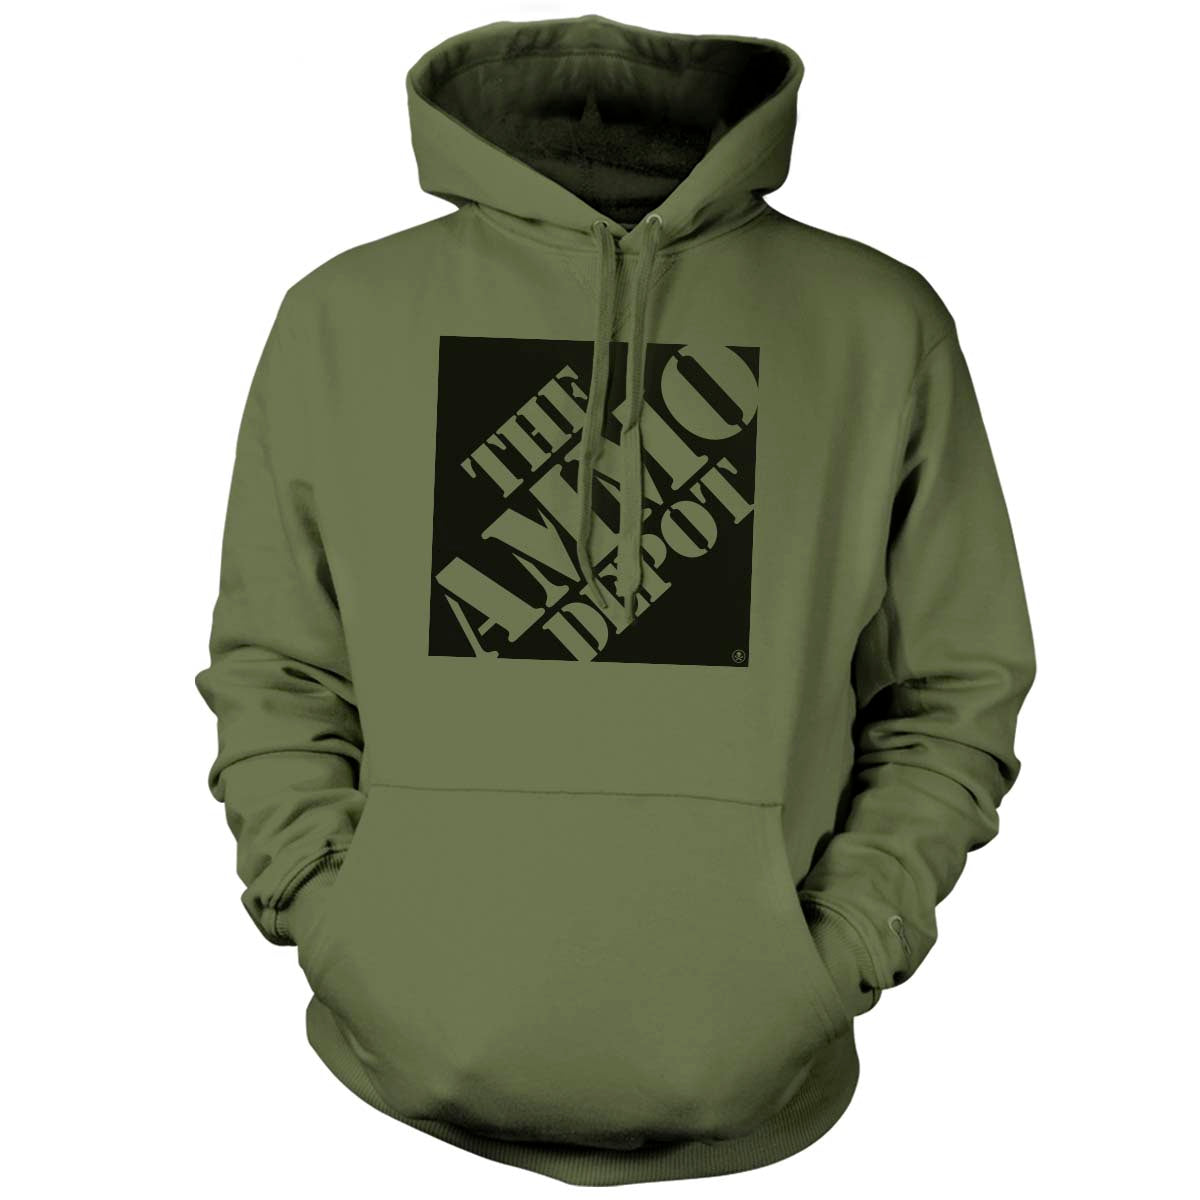 The Ammo Depot - Hoodie - Military Green - Hoodies - Pipe Hitters Union